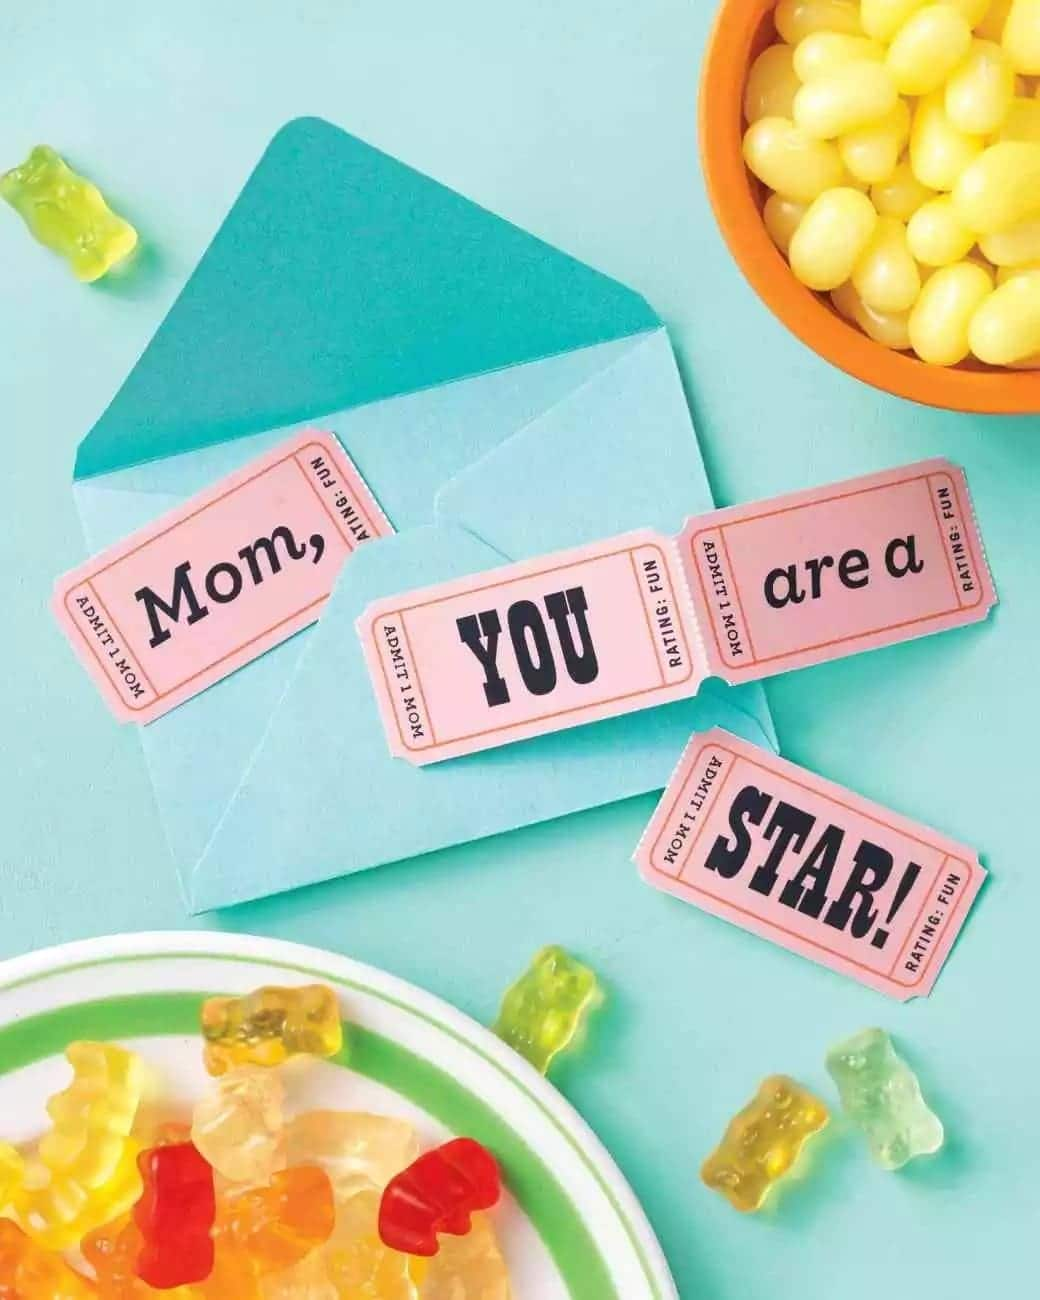 mother's day message ideas for a friend